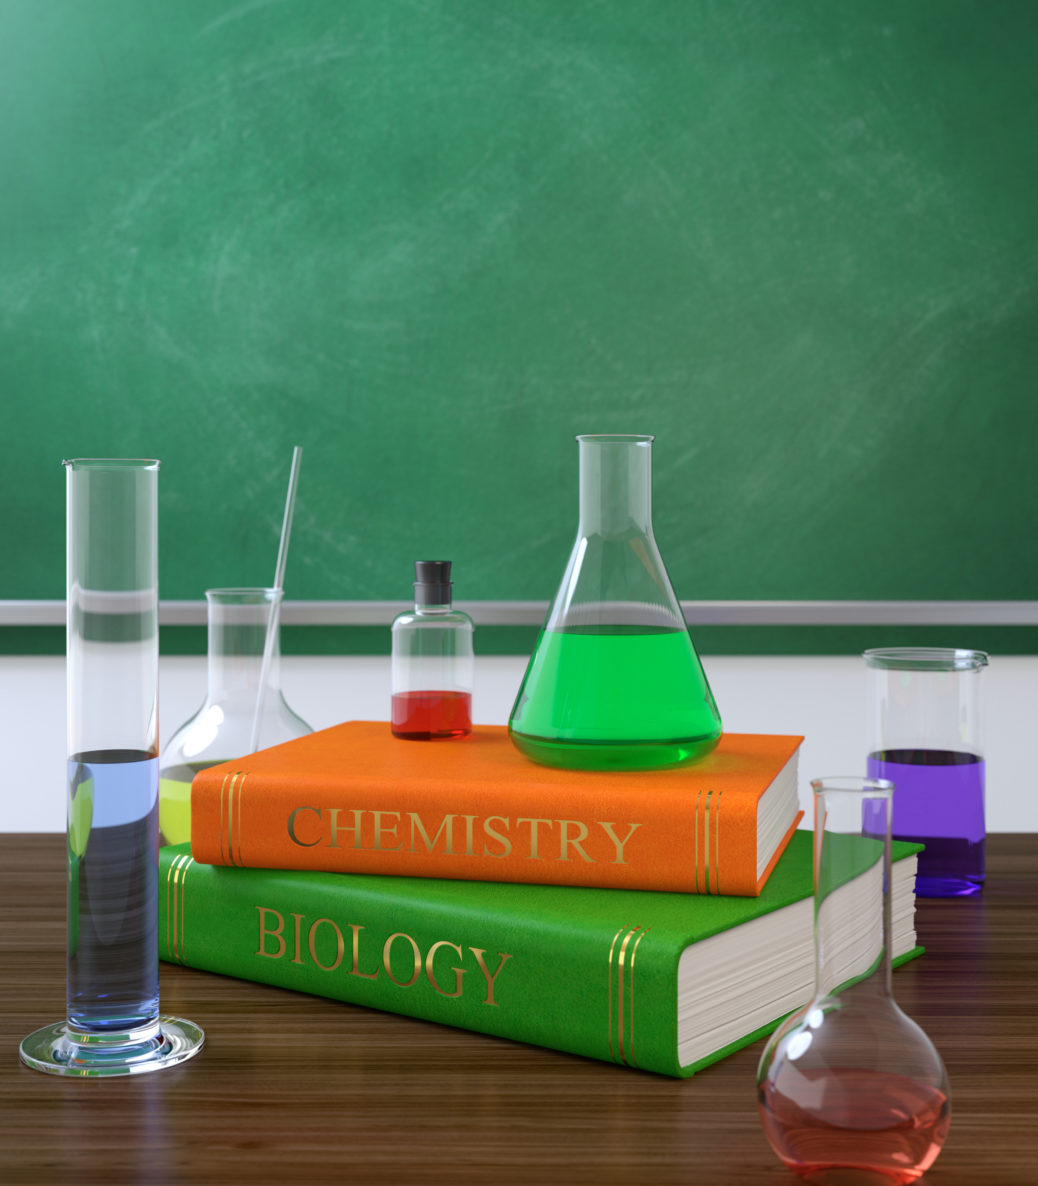 Education_Chemistry_Science_Biology